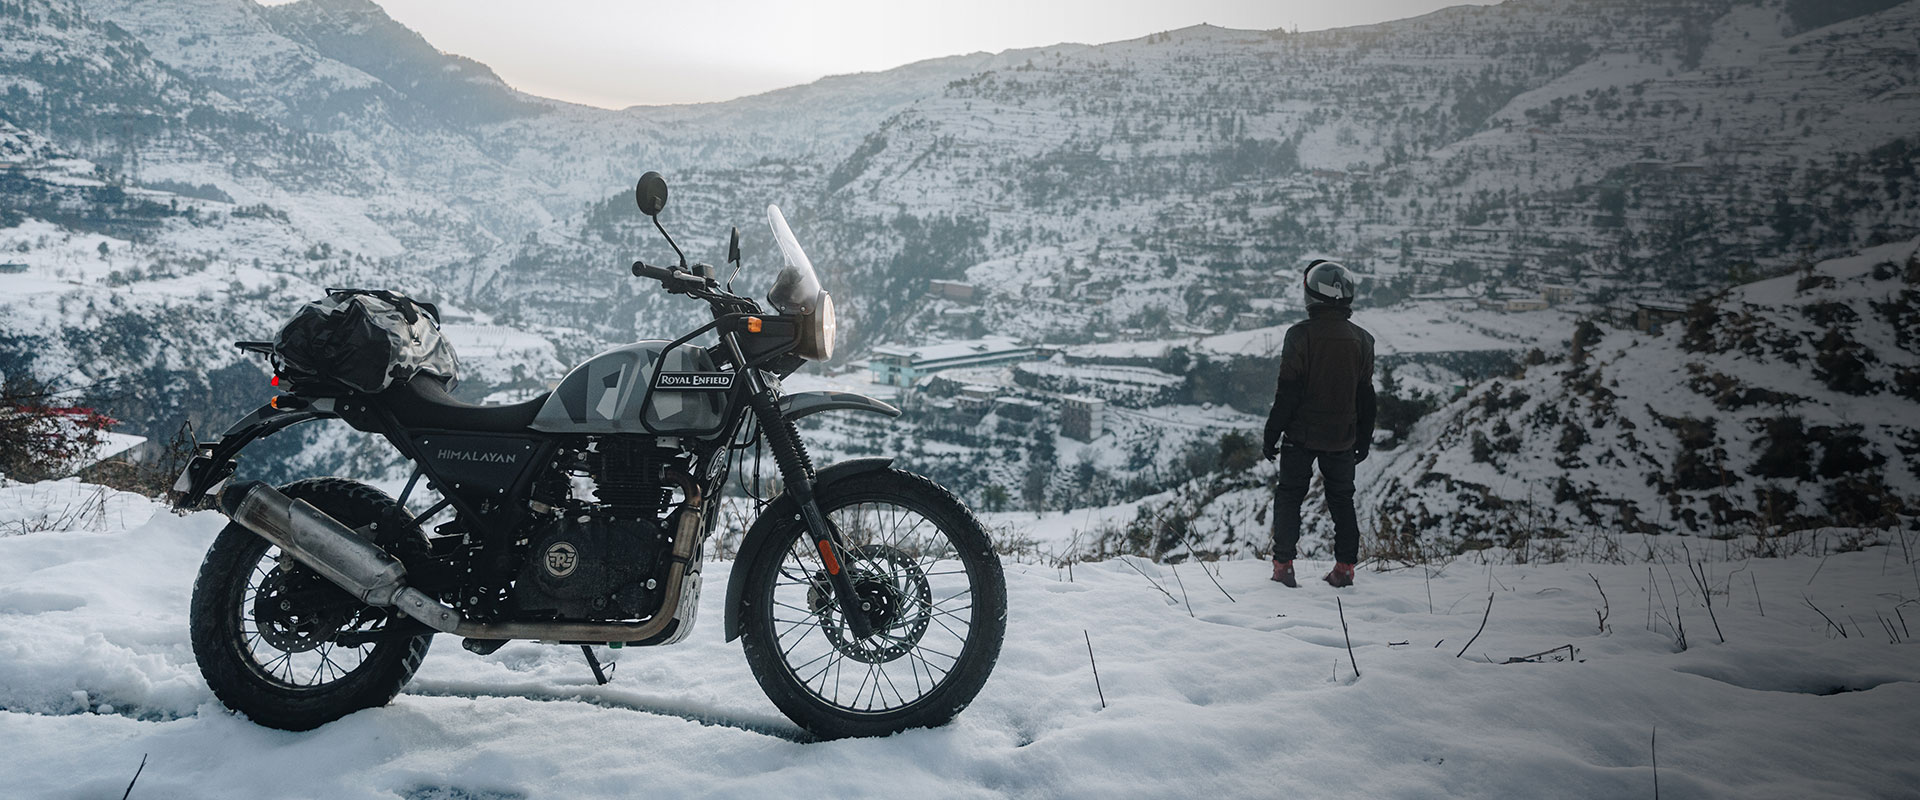 In the snow with the Royal Enfield Himalayan